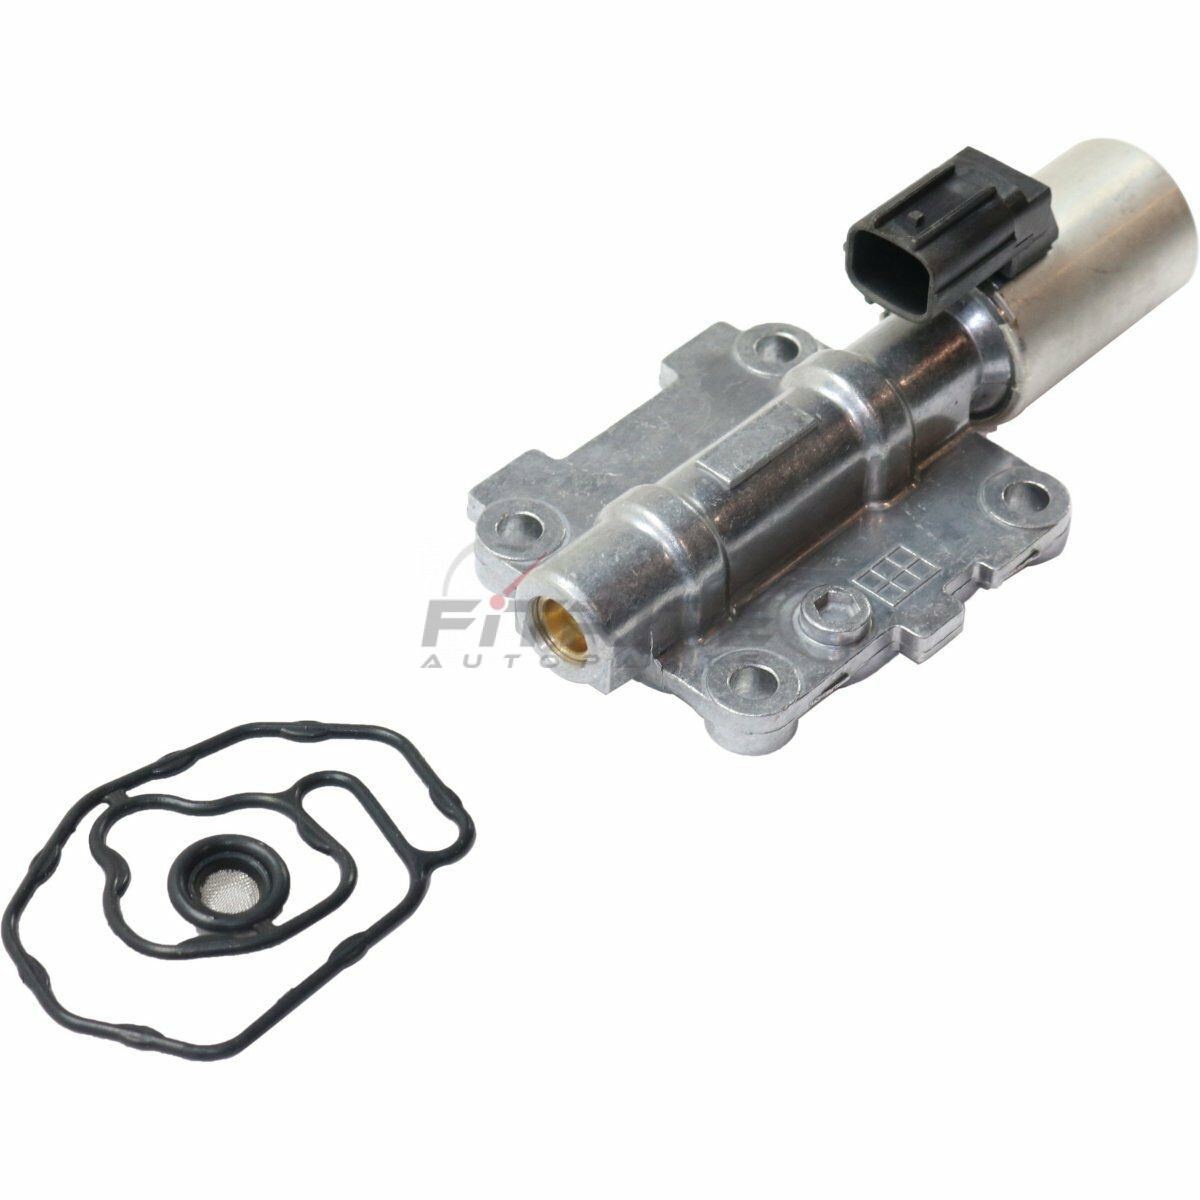 NEW LOWER AUTOMATIC TRANSMISSION SOLENOID FOR 2000-2006